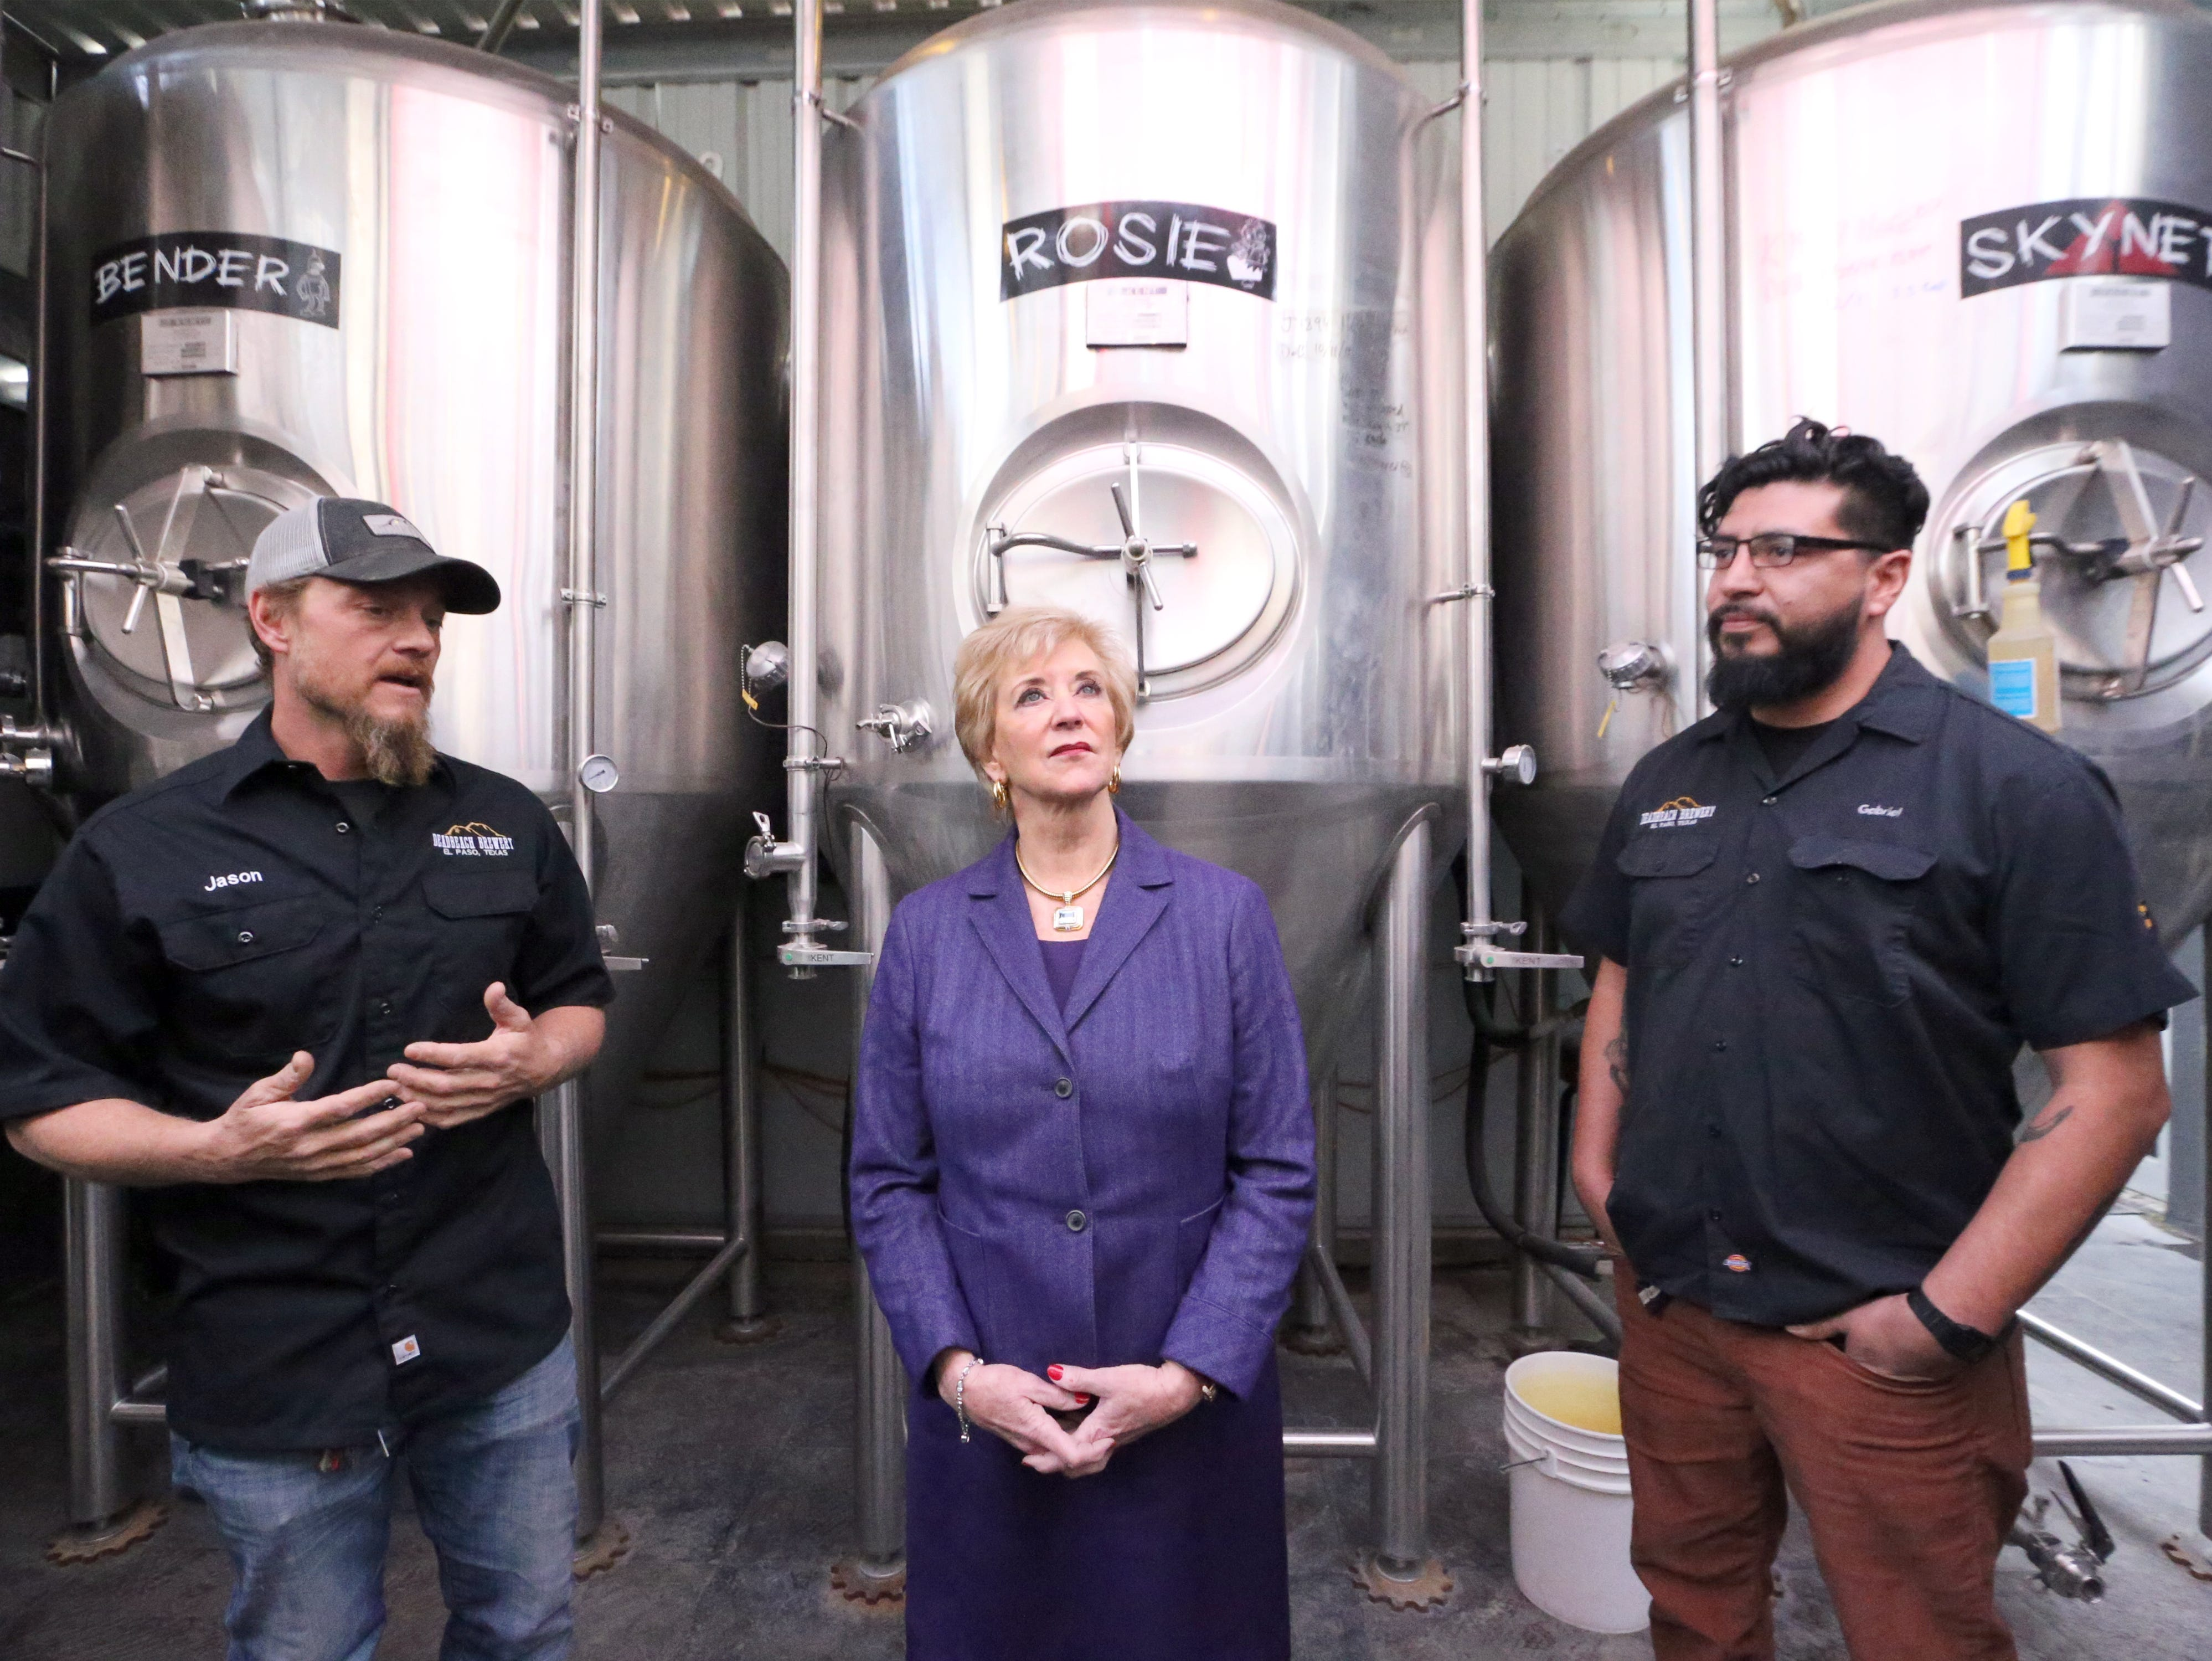 U.S. Small Business Administration director Linda McMahon, center, takes a tour of DeadBeach Brewery at 406 Durango Street with co-owners Jason Hunt, left, and Gabriel Montoya during a visit to El Paso Tuesday. Not pictured is co-owner Justin Ordoñez.